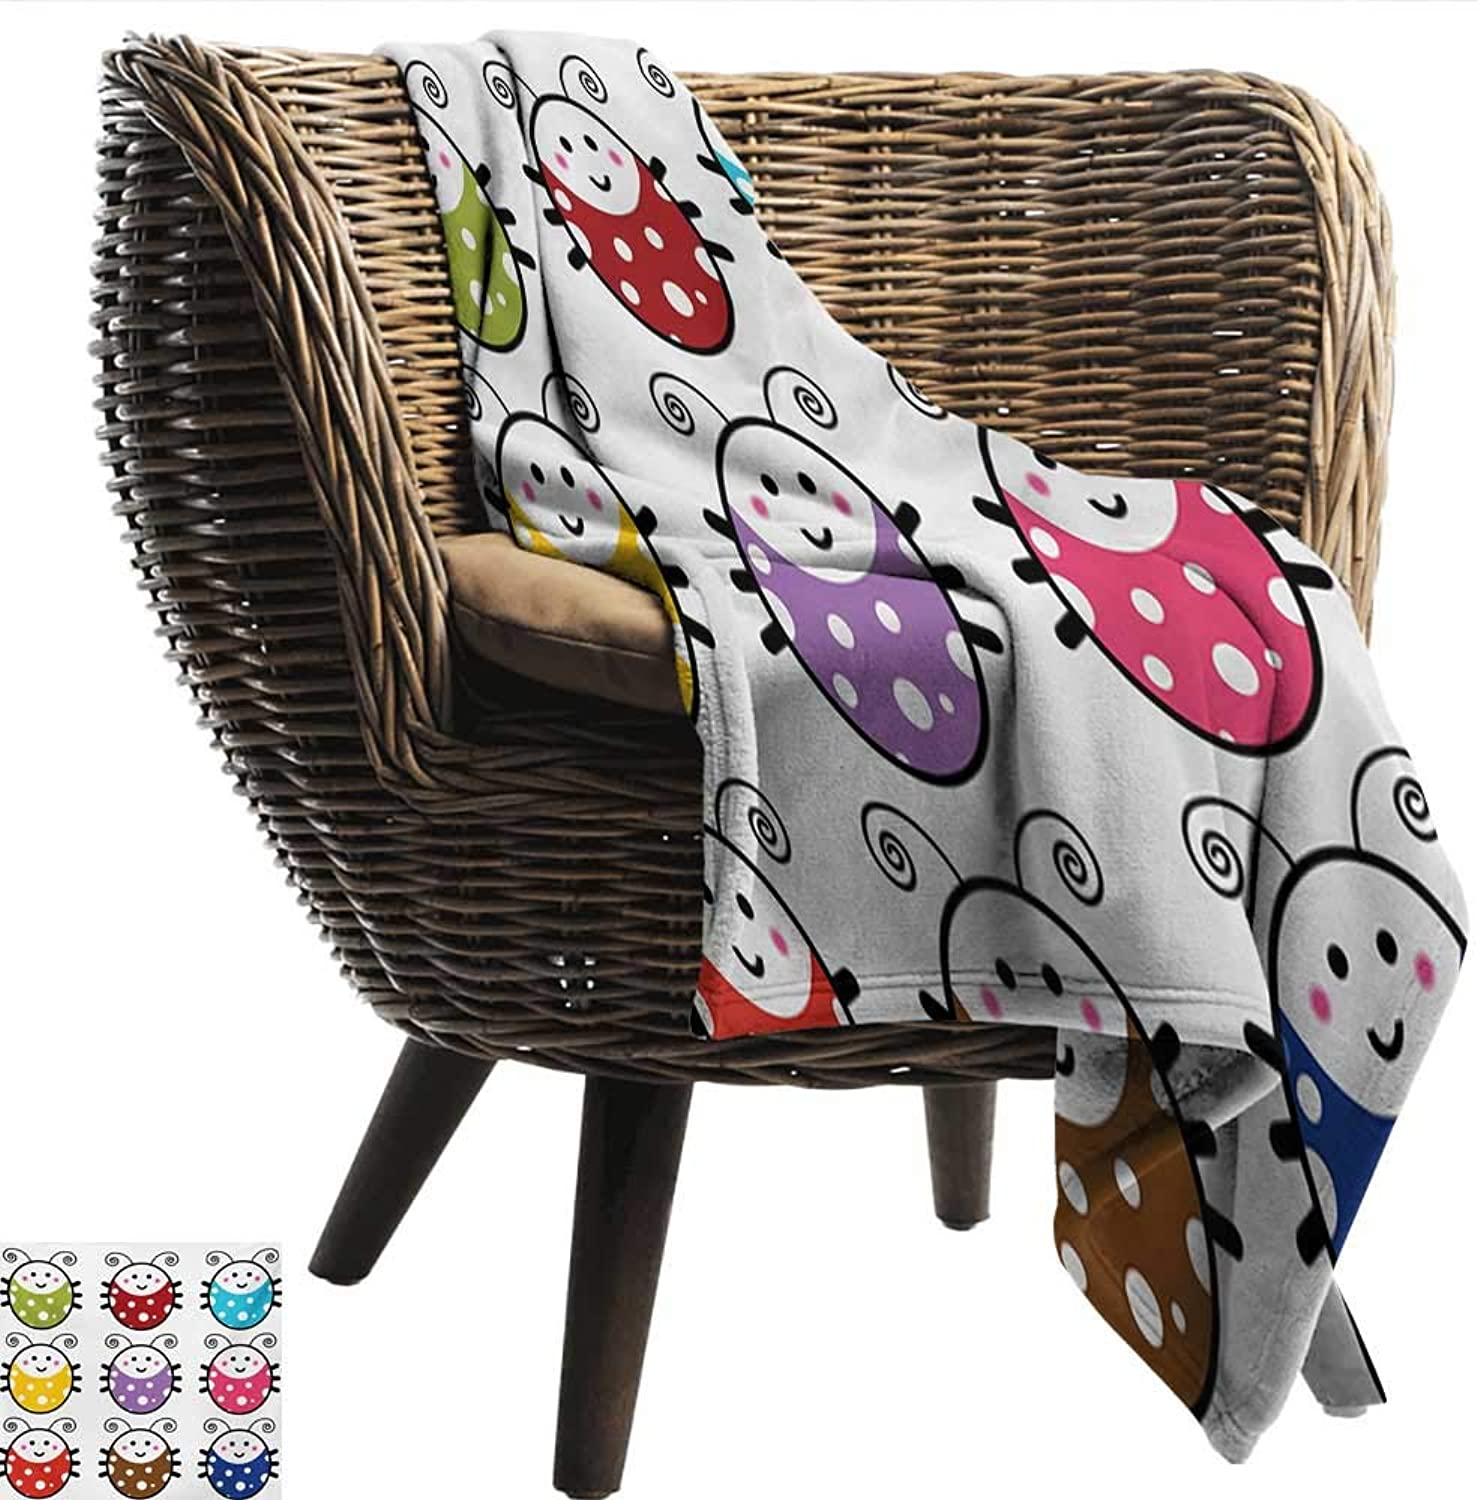 EwaskyOnline Ladybugs Knee Blanket Number of Cute Smiling Ladybugs Illustration in colorful Dot Design Kids Nursery Print Blanket on Bed Sofa Bedding 51  W x 60  L Multi